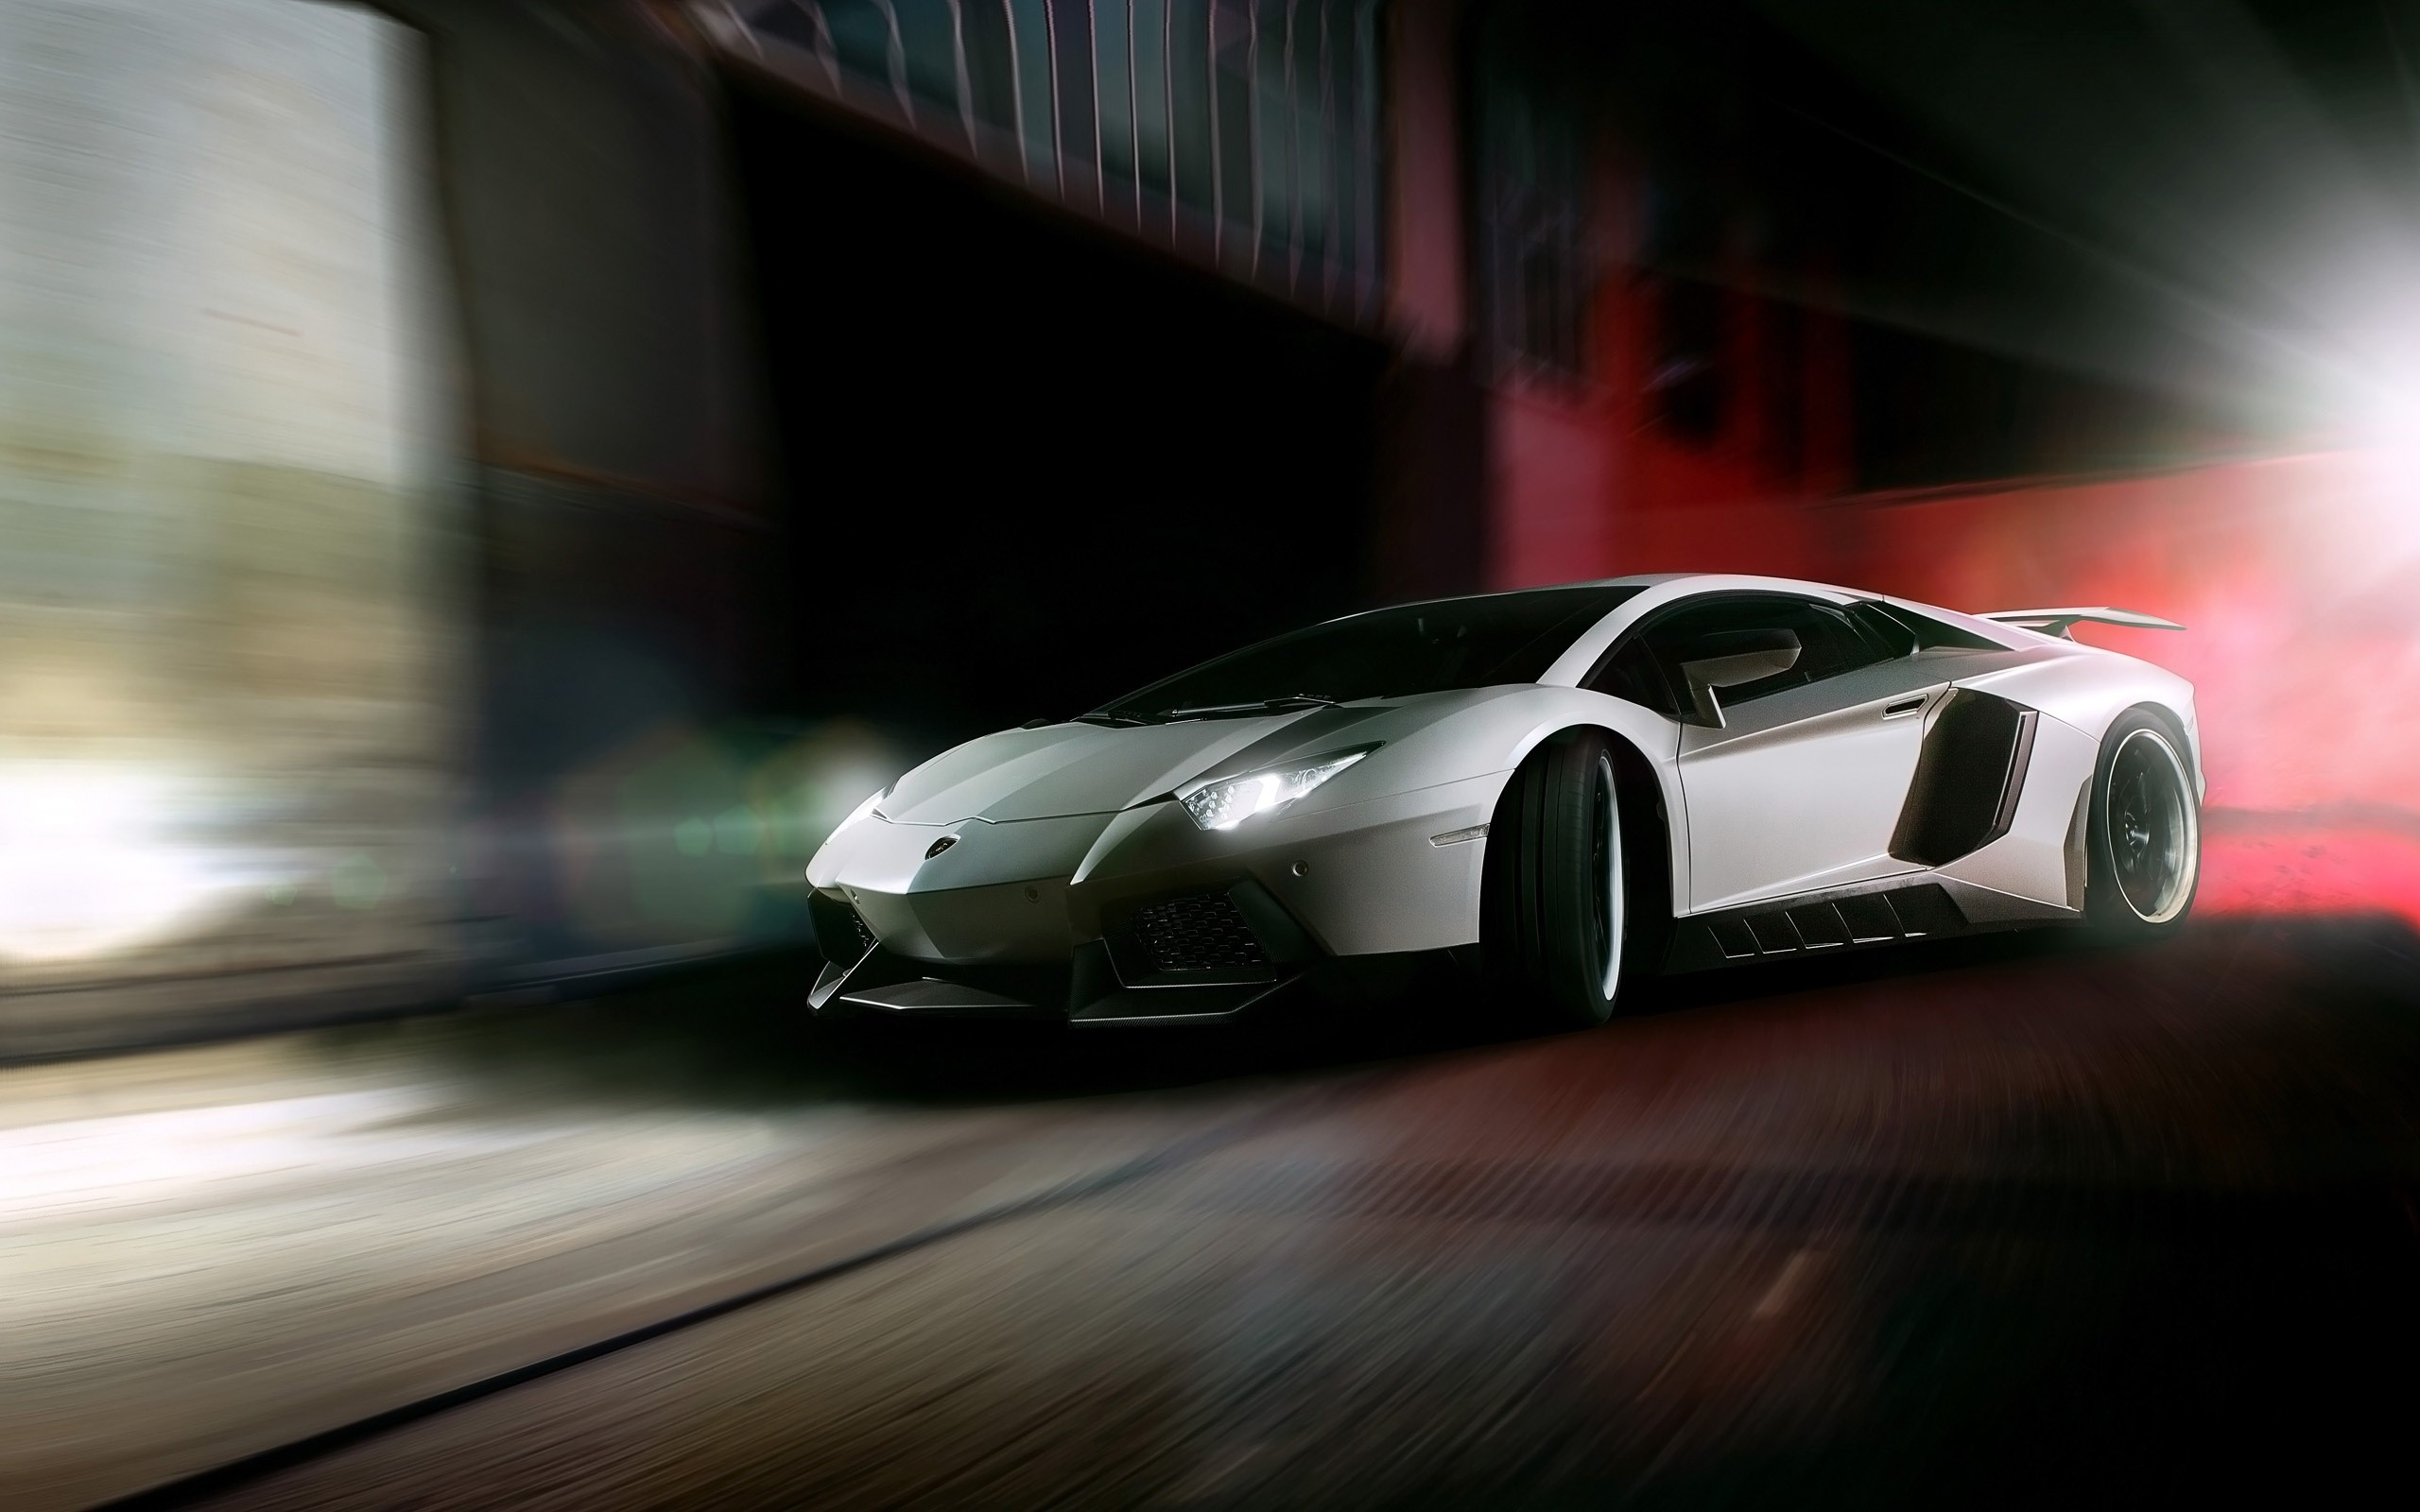 Wallpaper Lamborghini Aventador from Novitec Torado